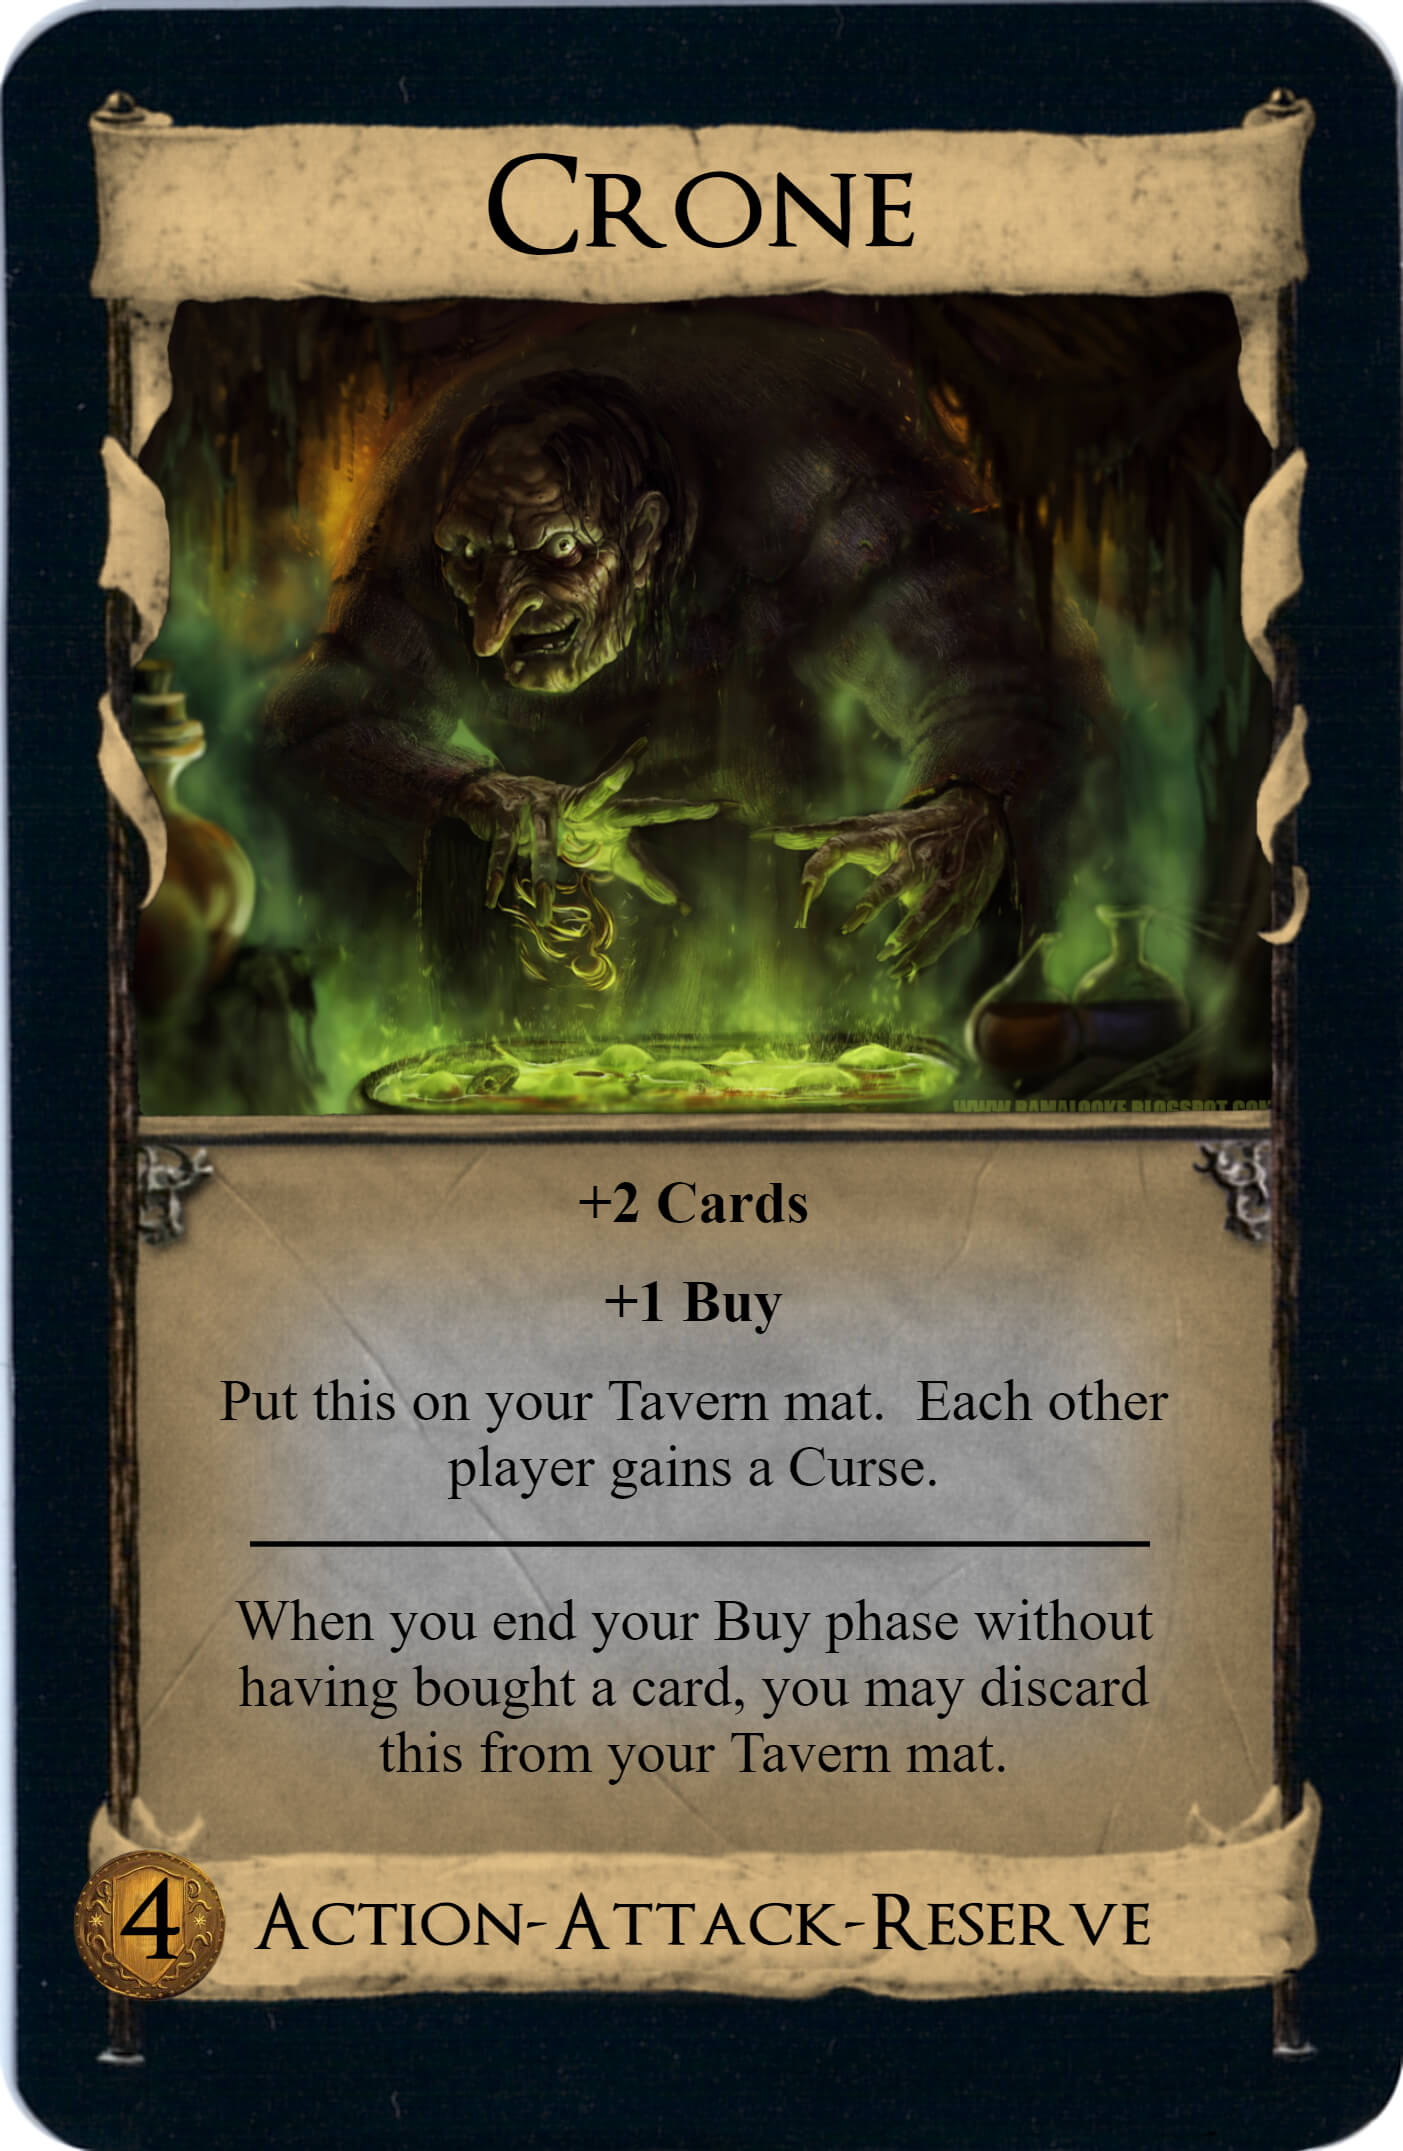 Dominion Card Image Generator With Regard To Dominion Card Template